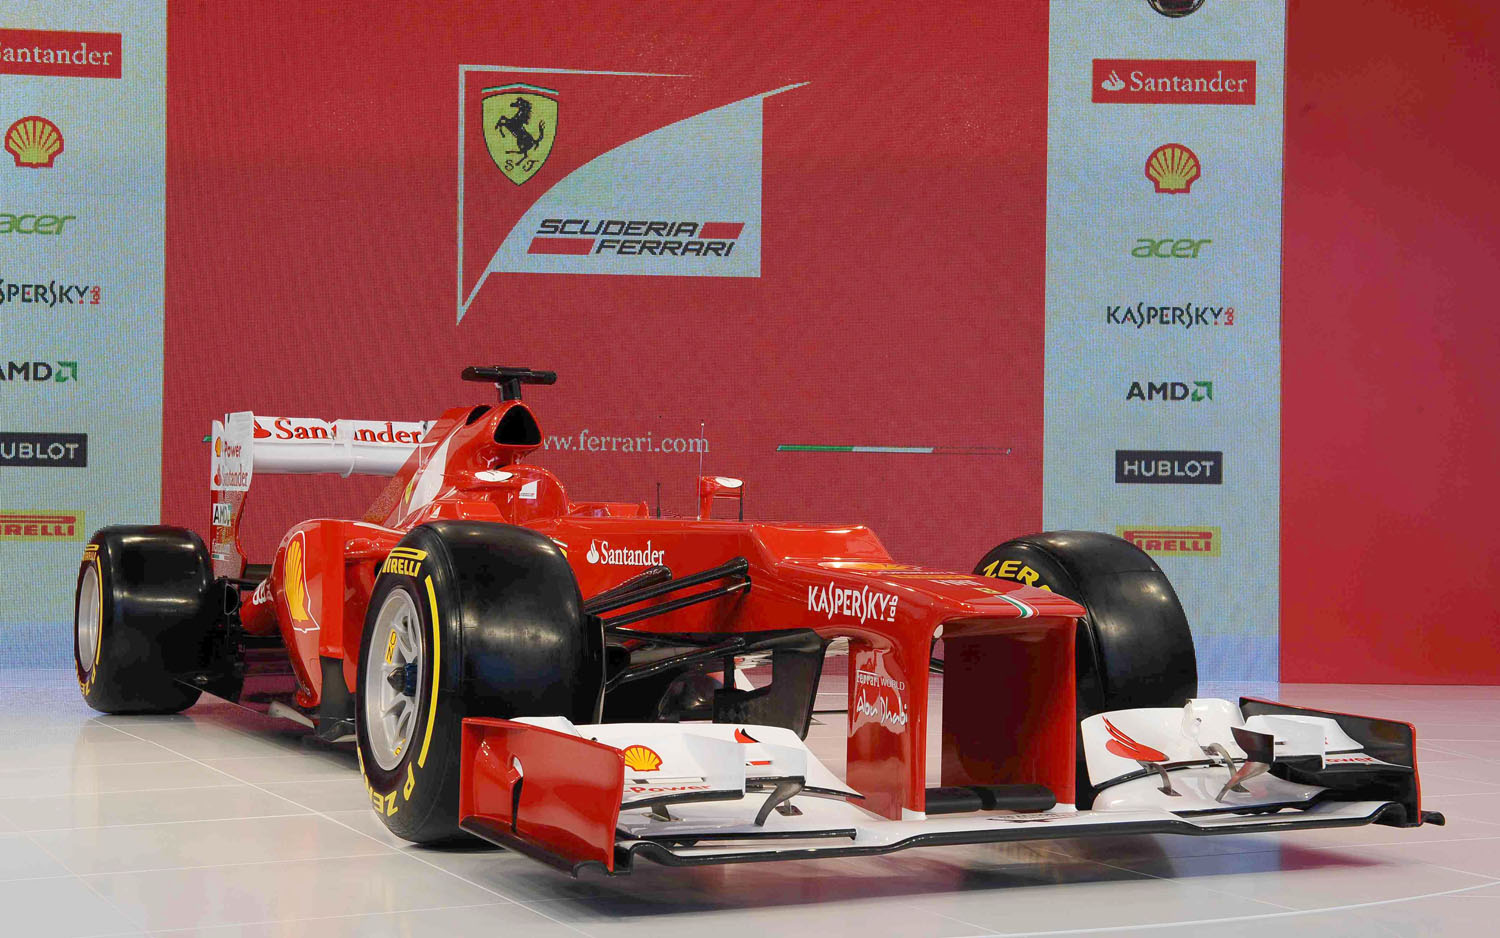 Ferrari F2012 F1 Front Three Quarter